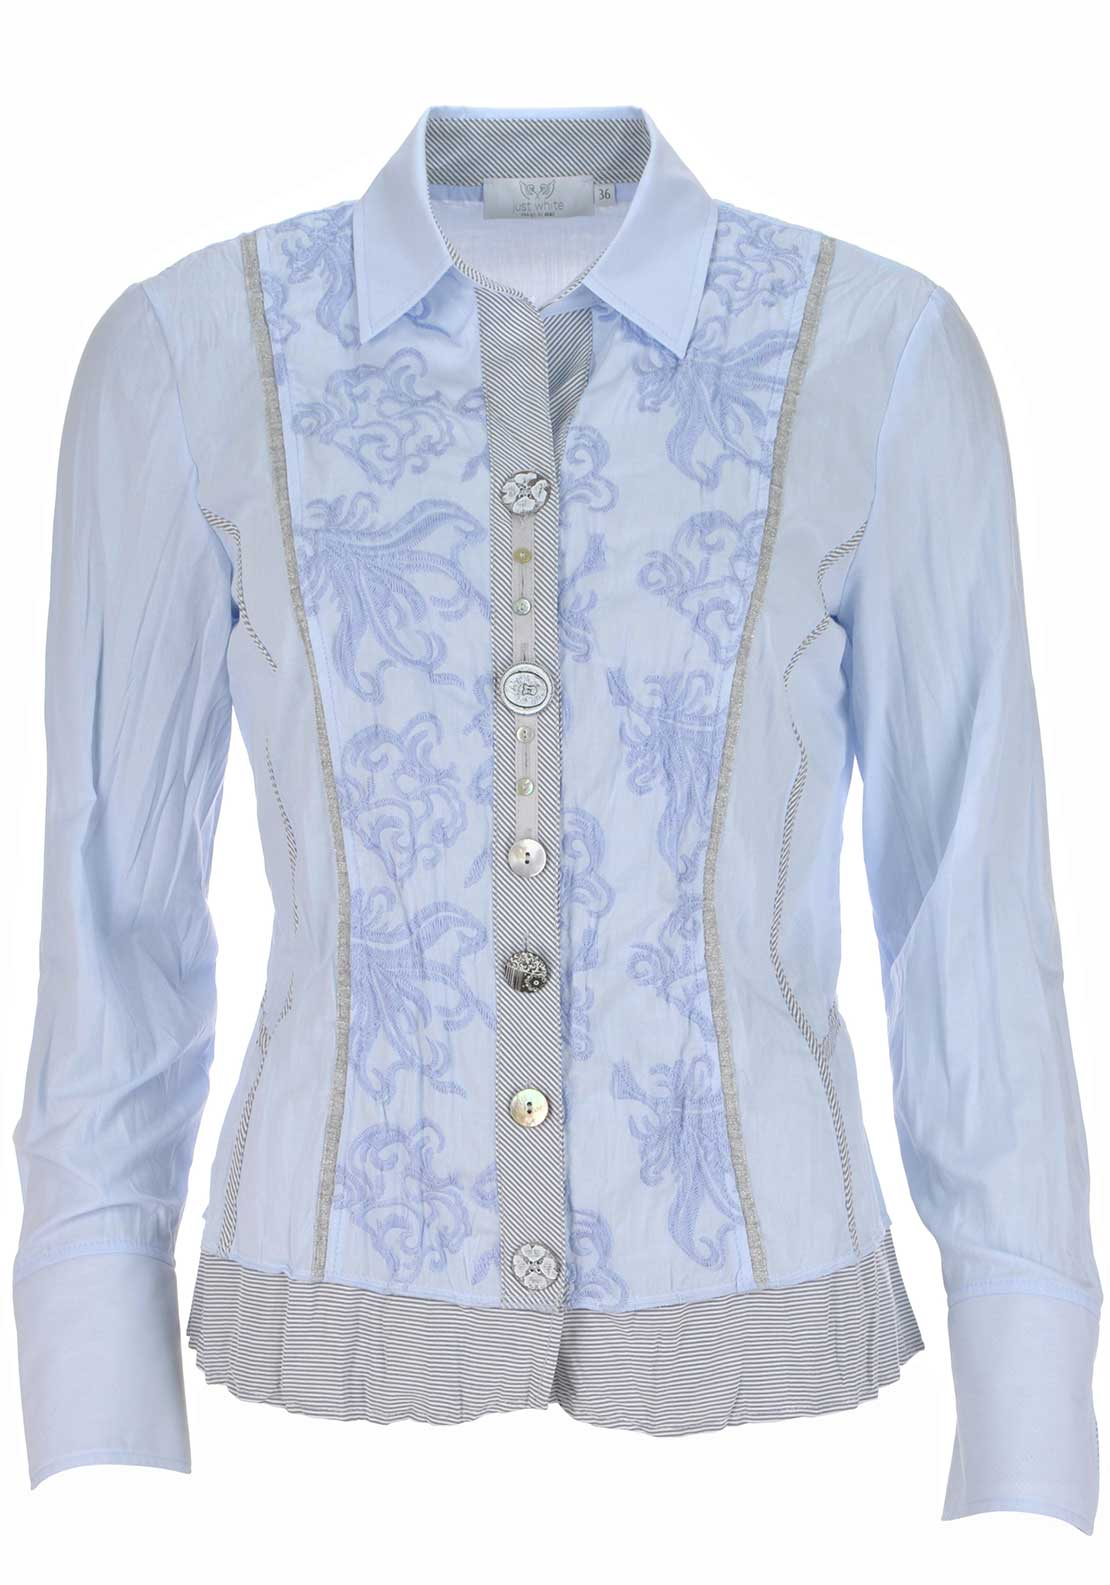 Just White Embroidered Long Sleeve Blouse, Pale Blue